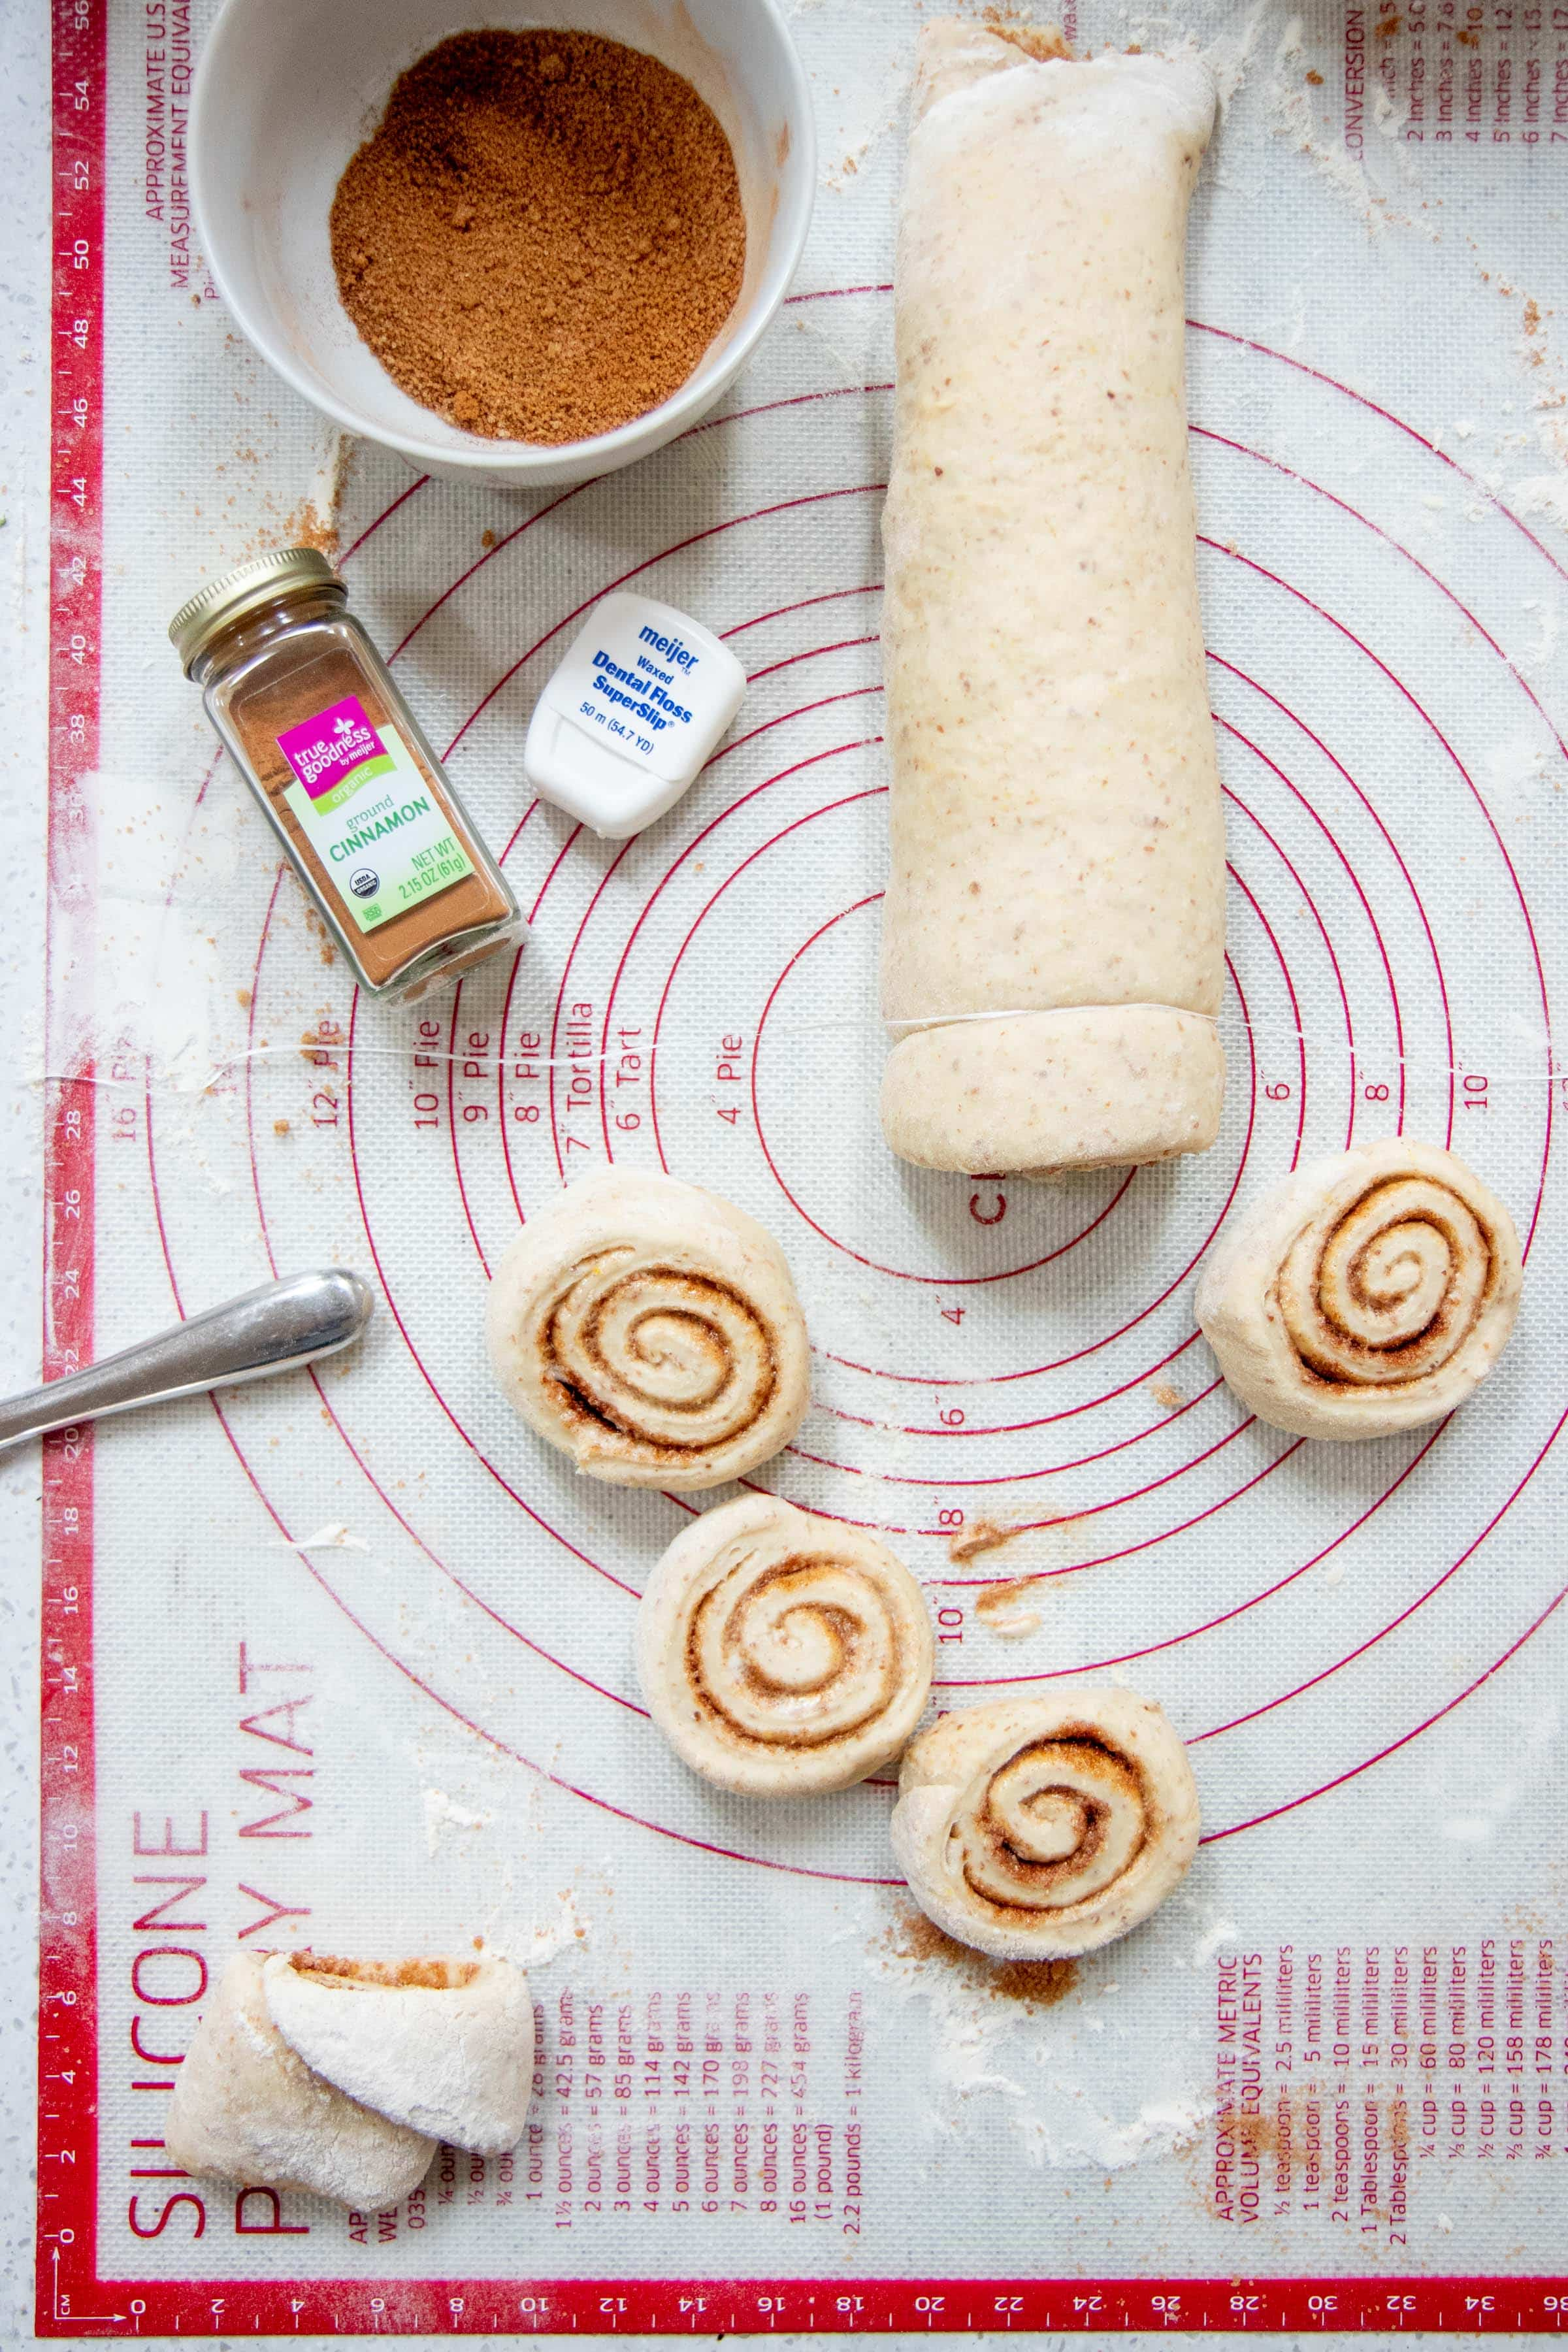 Vegan Cinnamon Rolls being sliced with dental floss, with some already cut rolls nearby